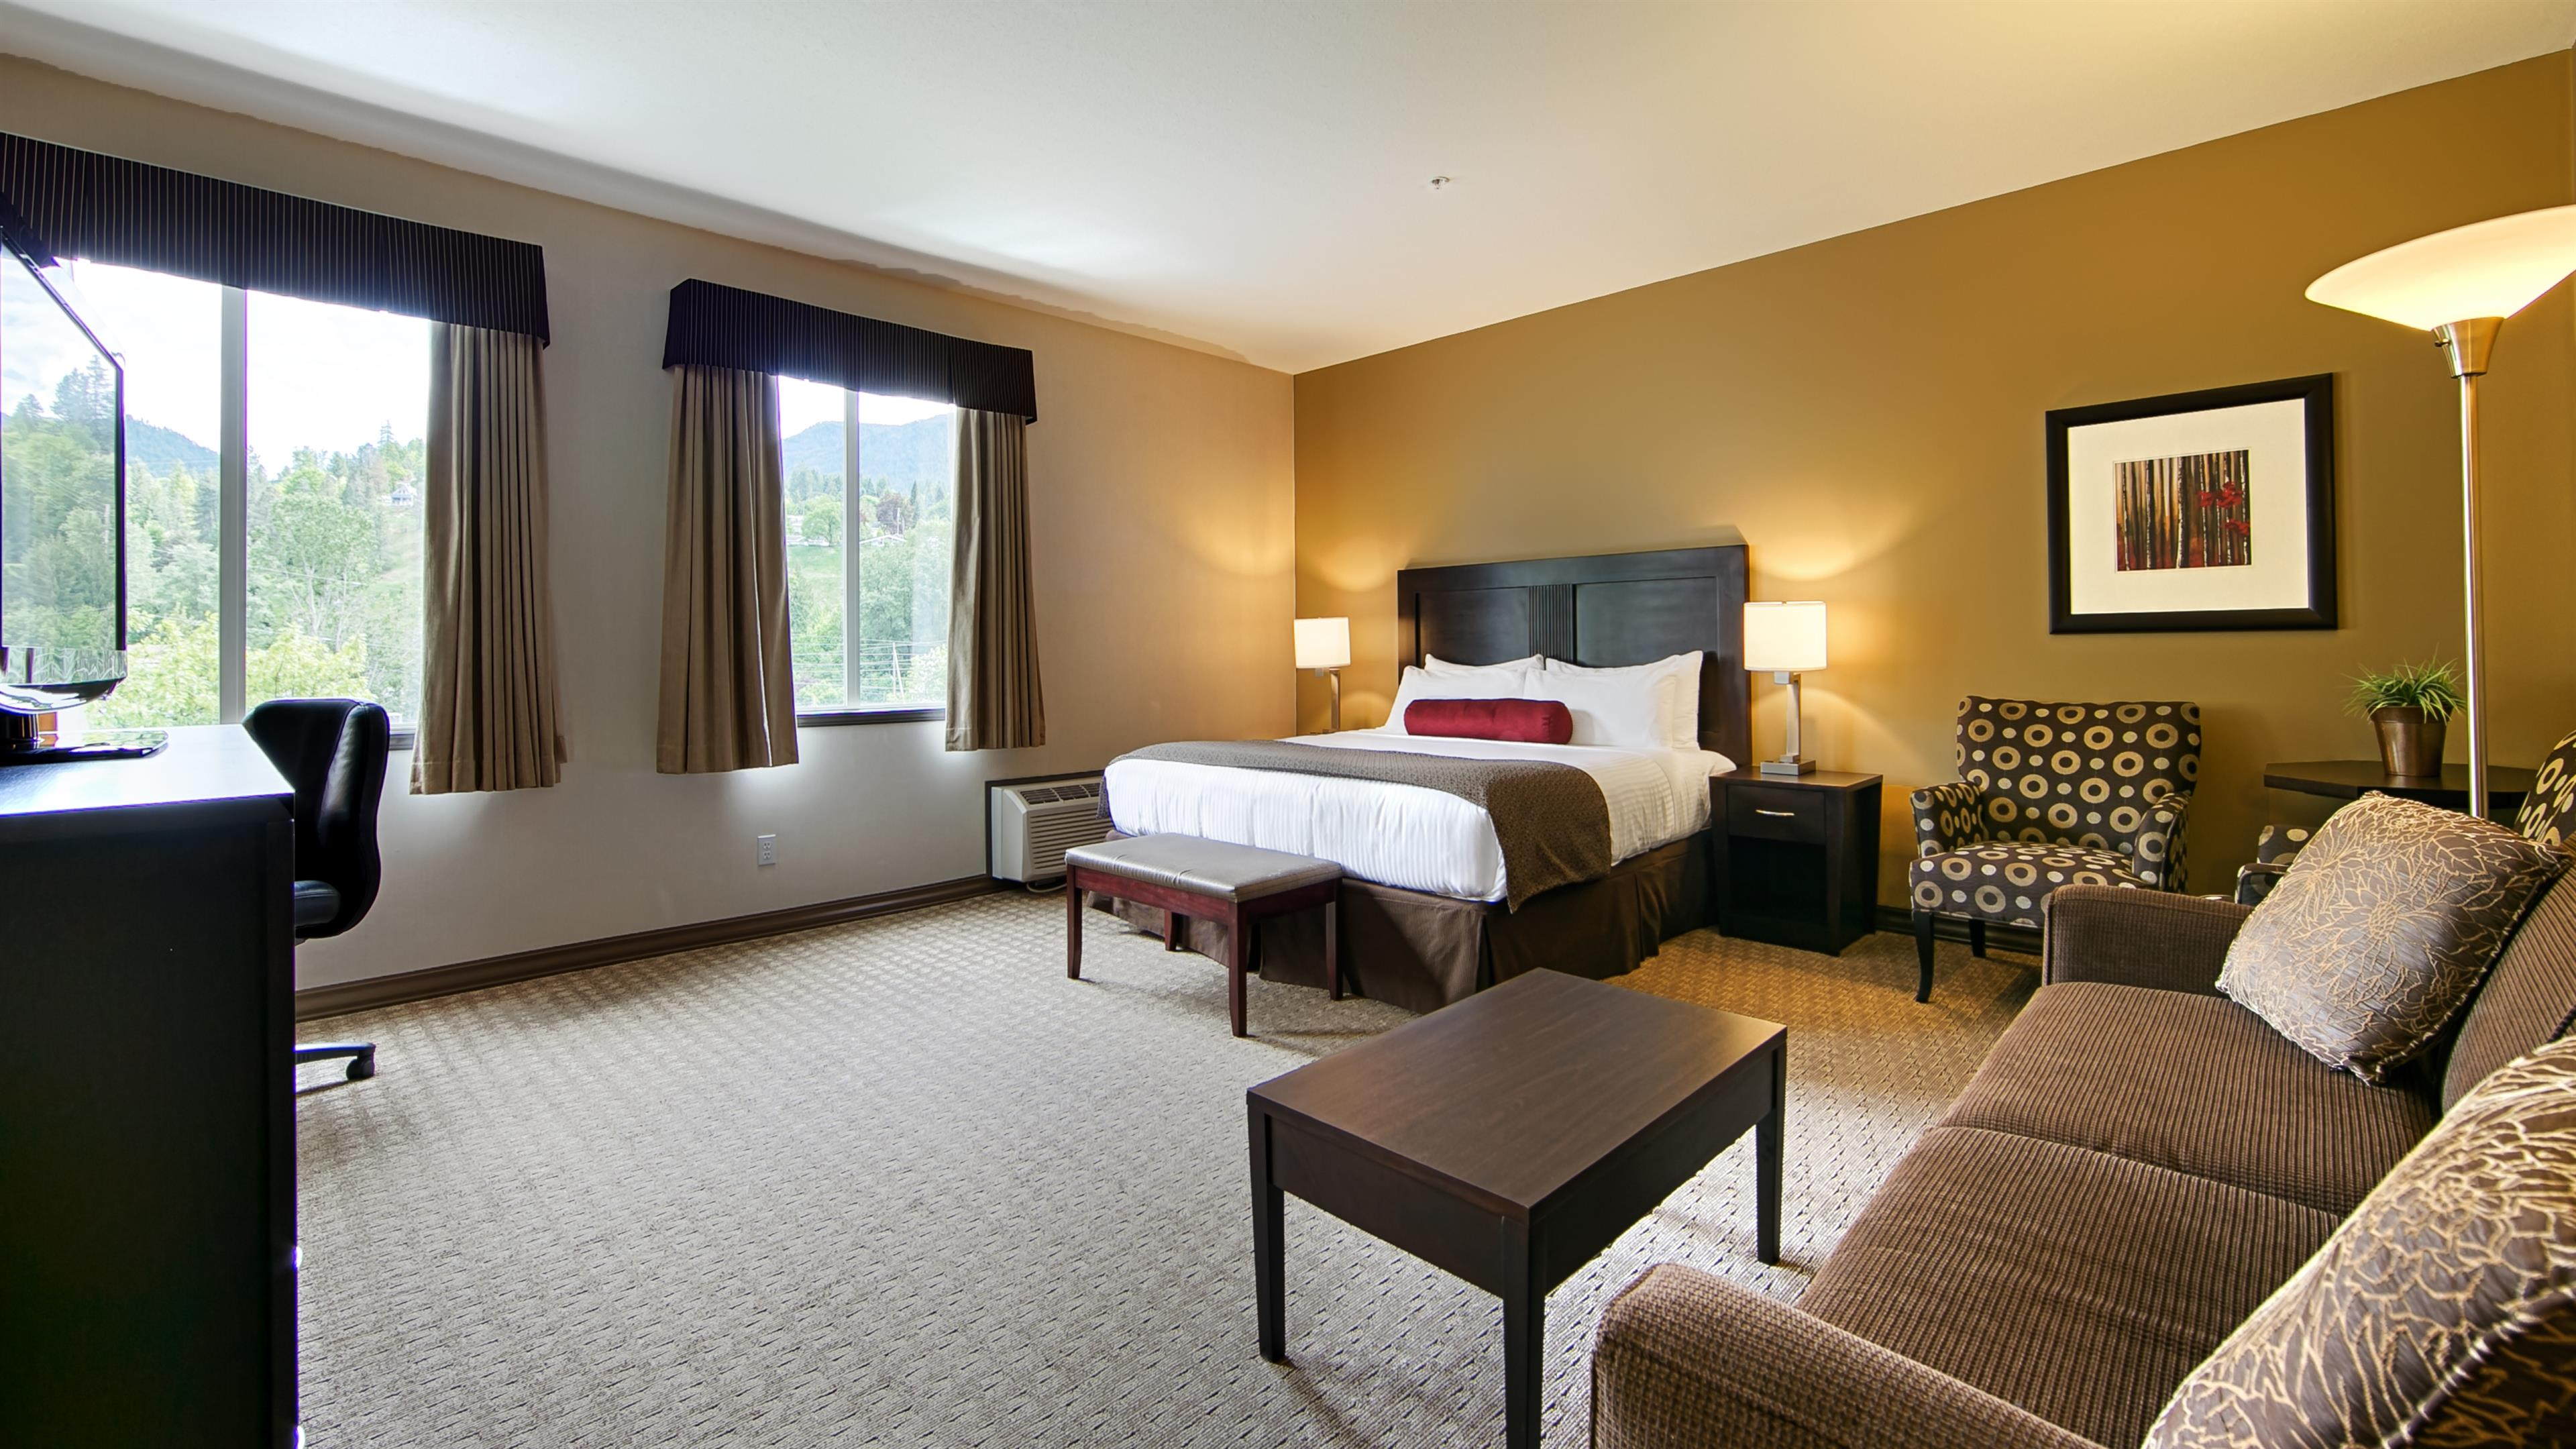 Best Western Plus Baker Street Inn & Convention Centre in Nelson: Deluxe King Guest Room